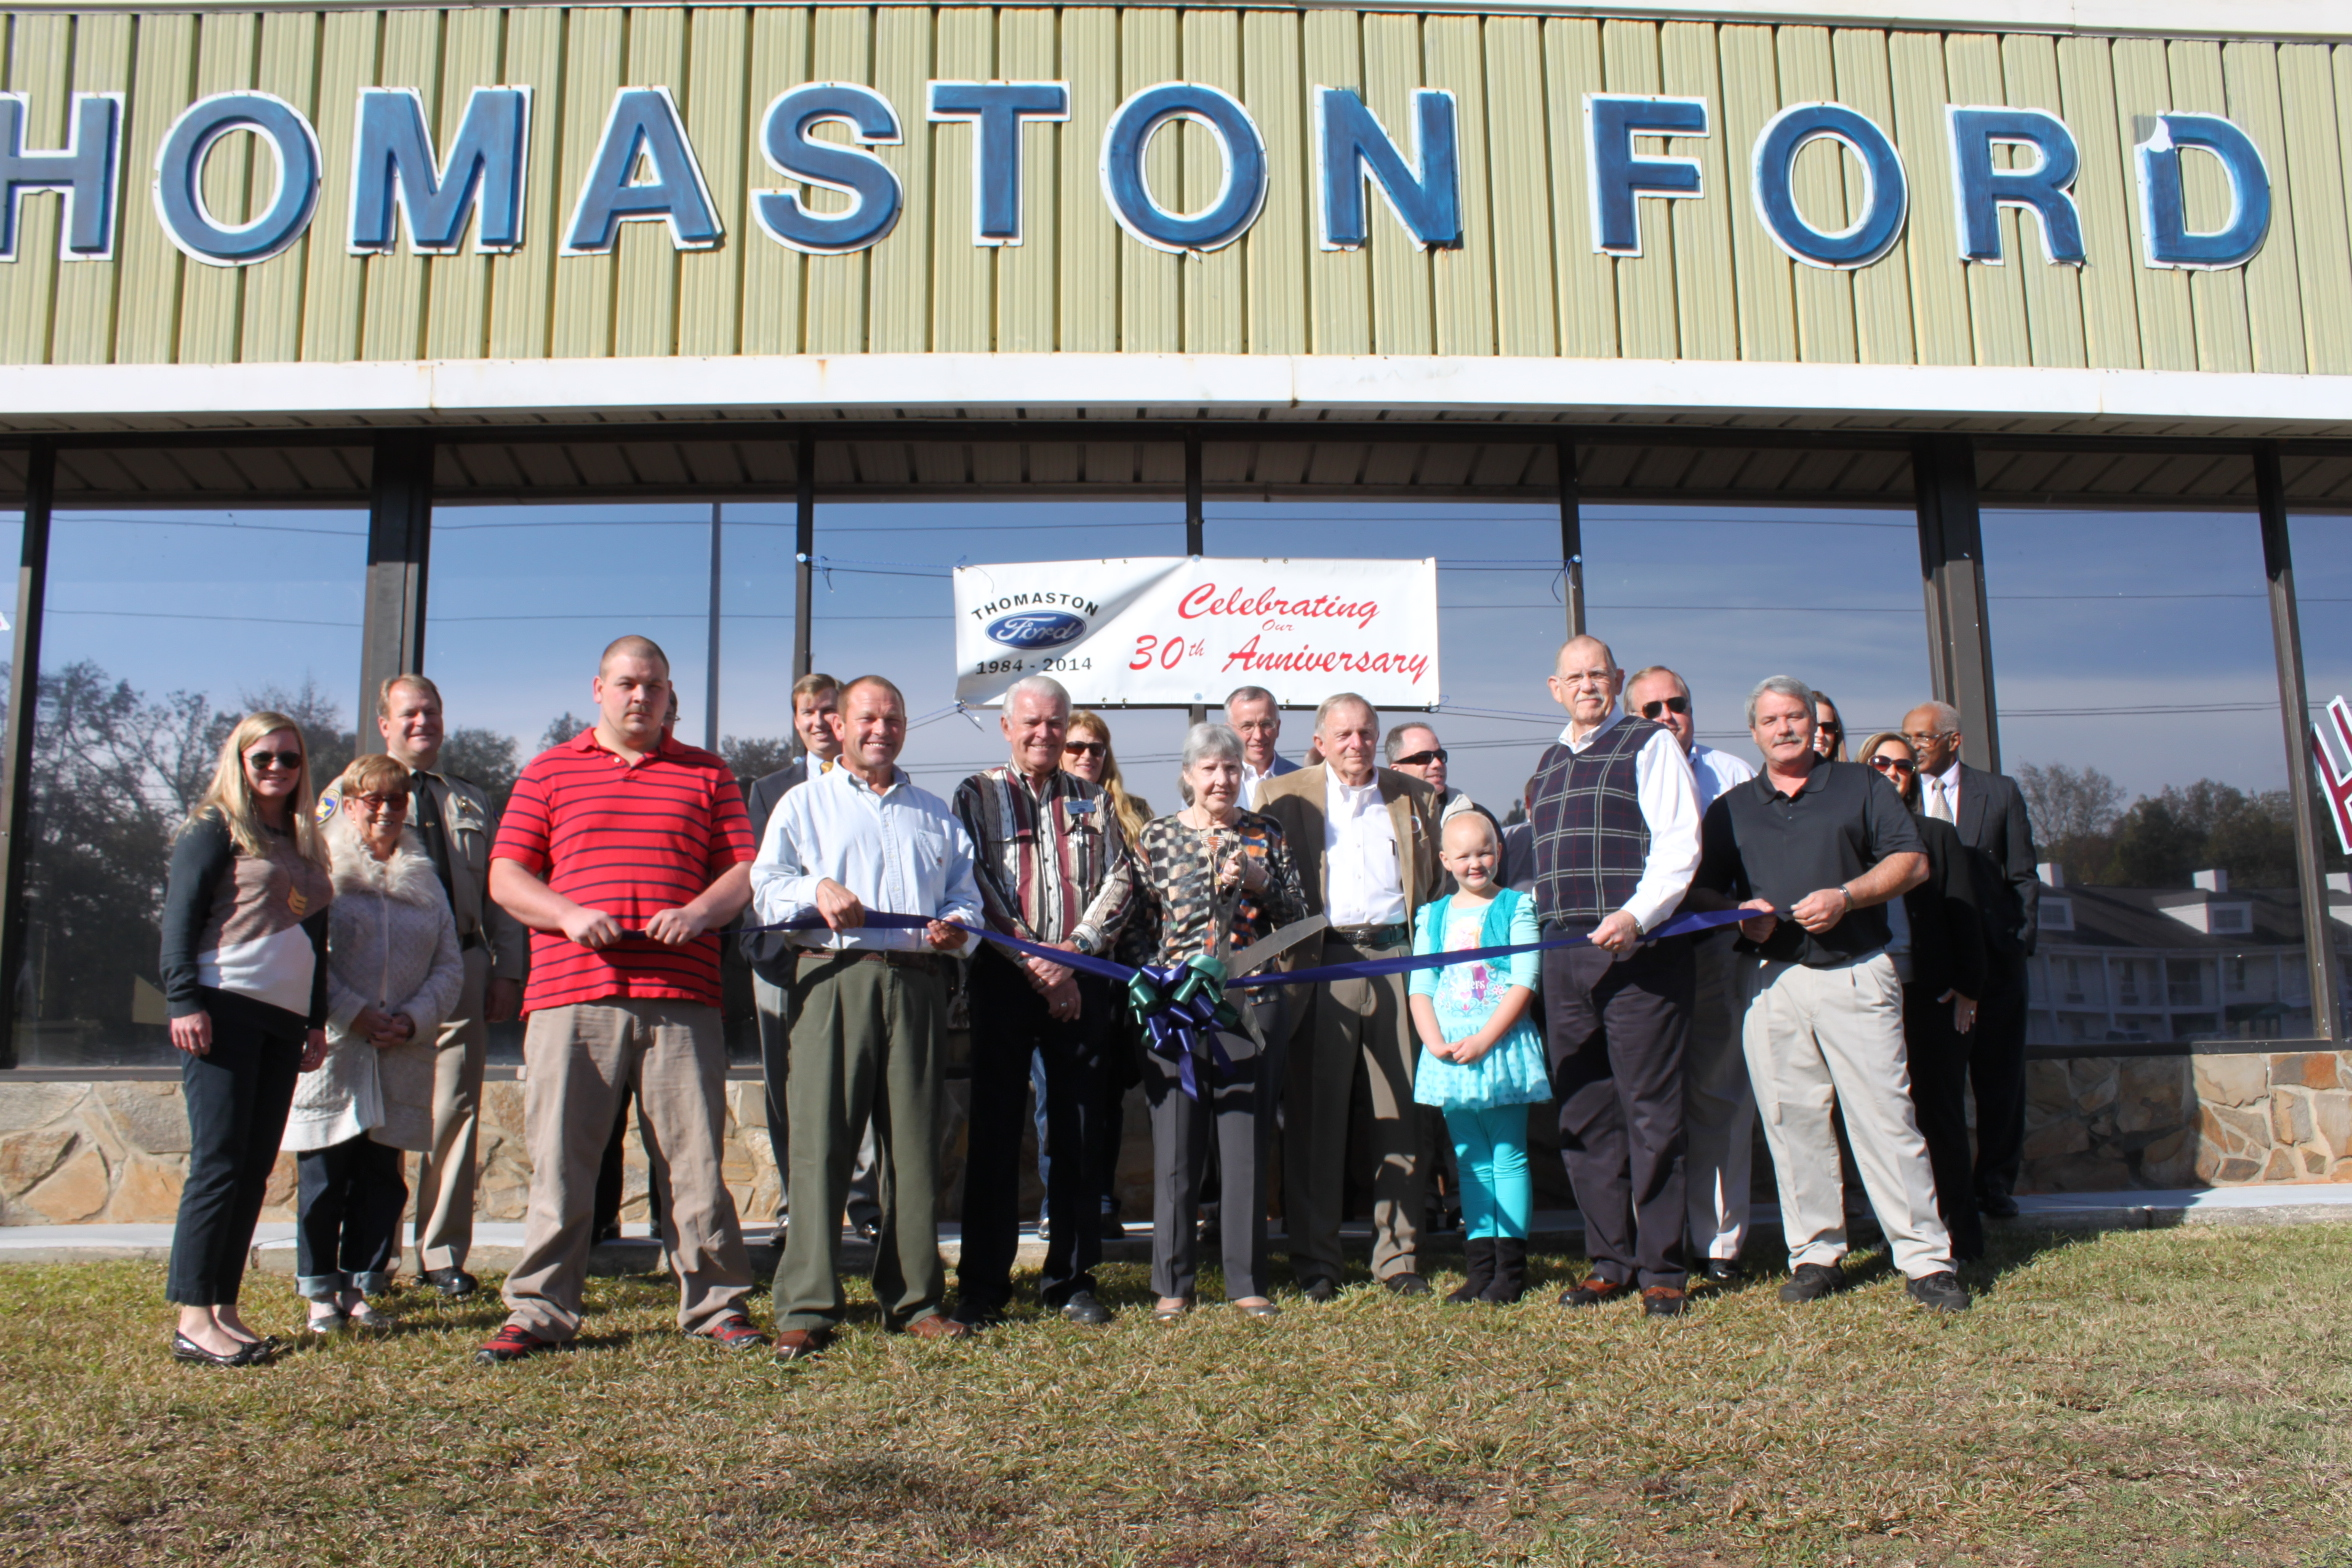 11-11_Thomaston_Ford_30th_anniversary.JPG